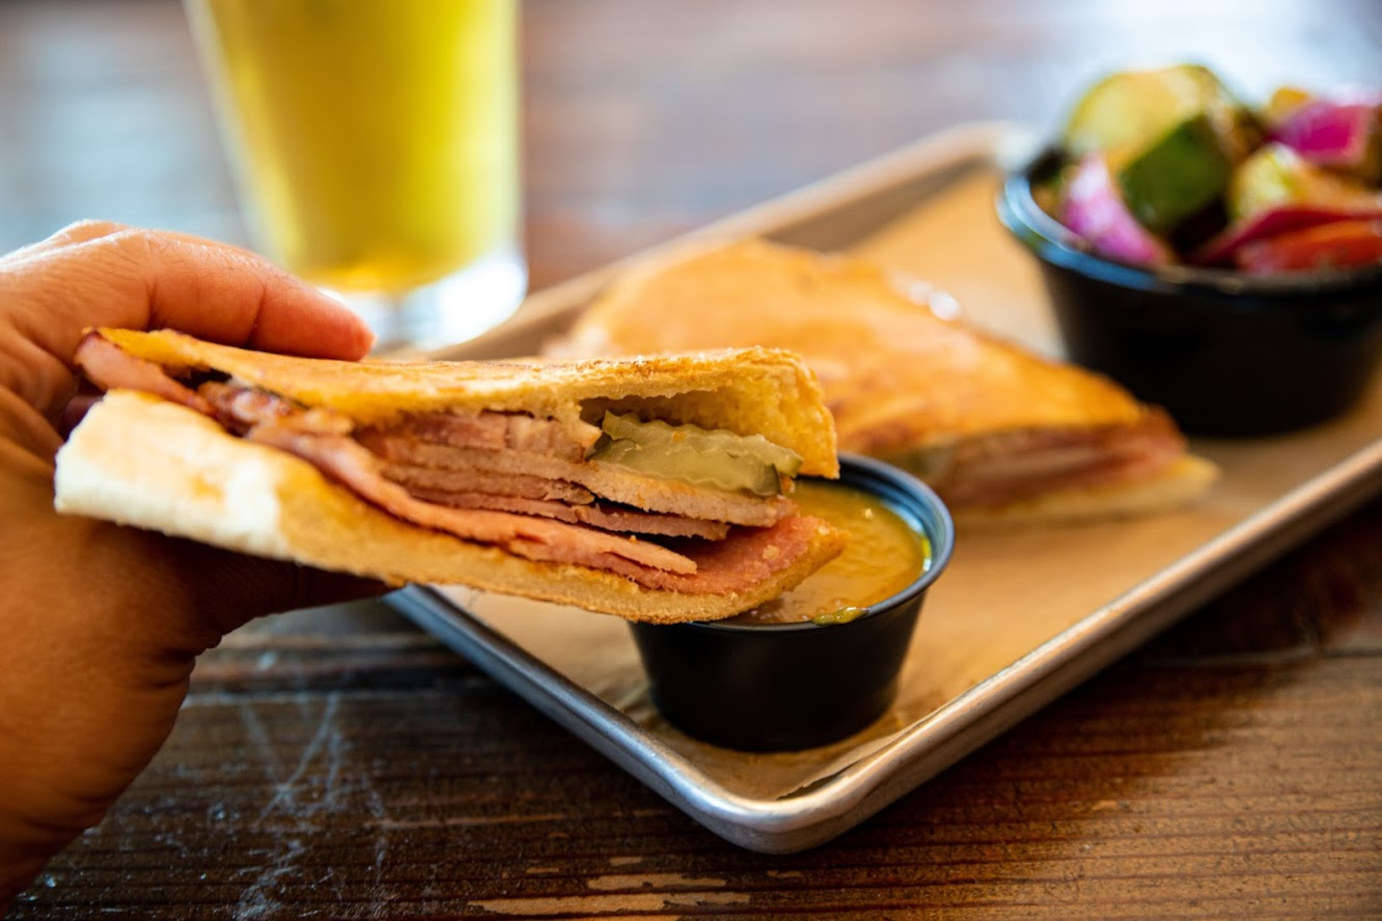 Sandwich, dip, salad glass of beer on the side